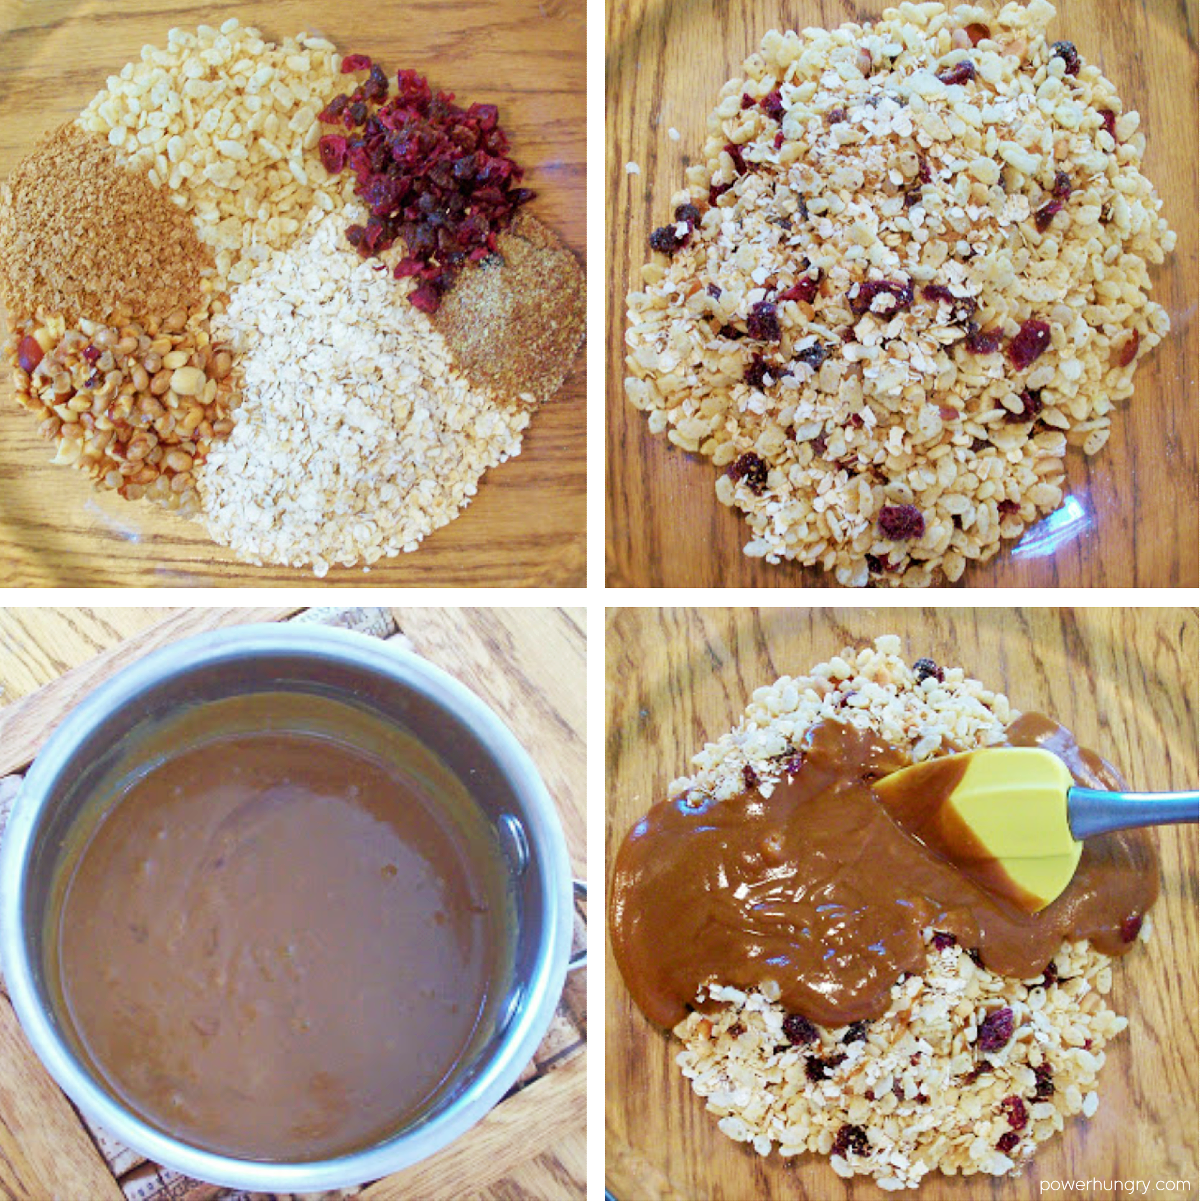 steps for mixing the ingredients for homemade clif bars